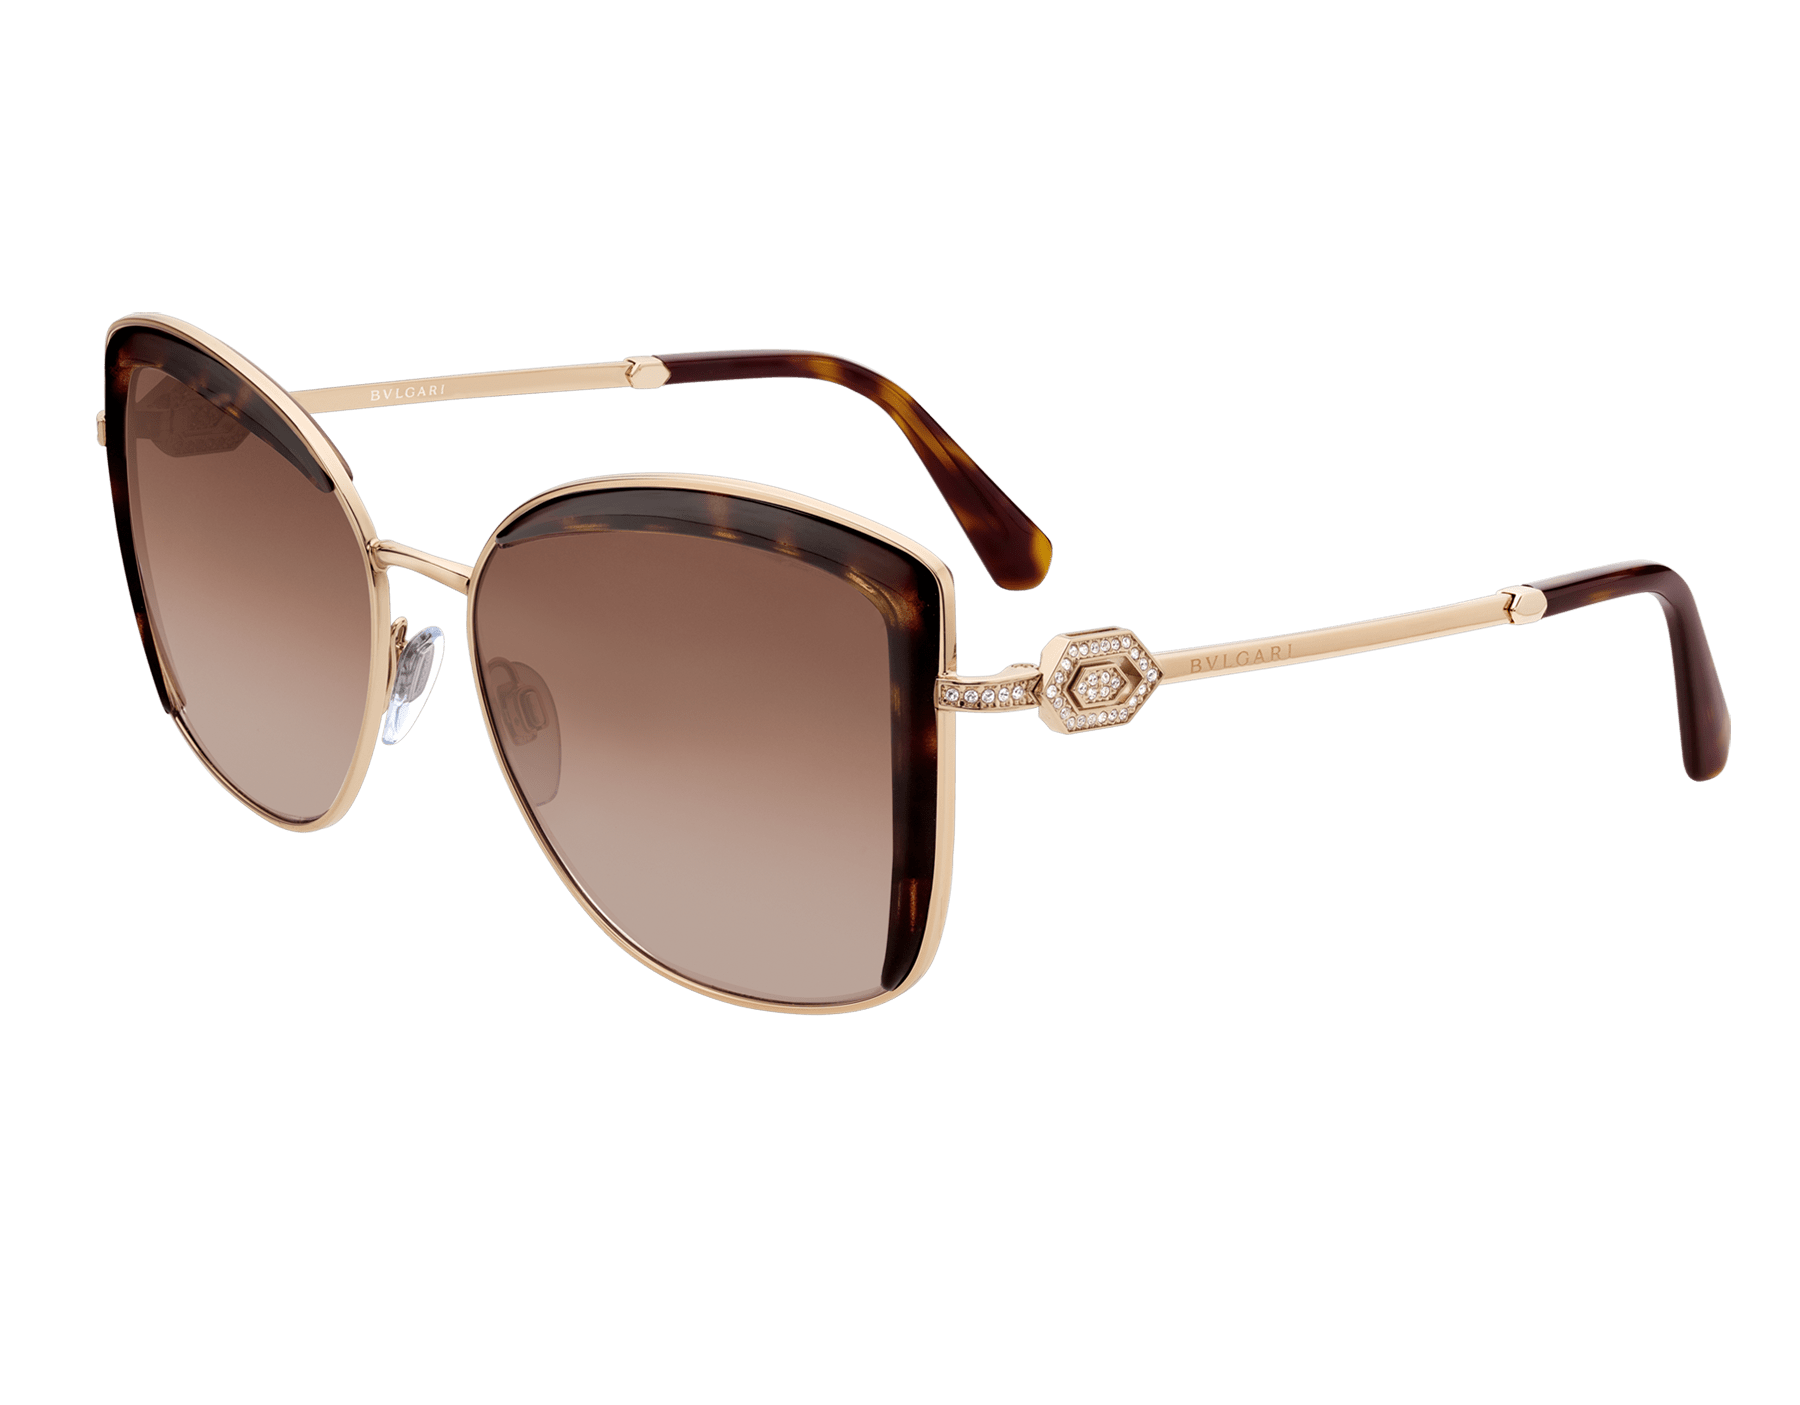 Bulgari Serpenti squared metal sunglasses with Serpenti openwork metal decoration with crystals. 903904 image 1